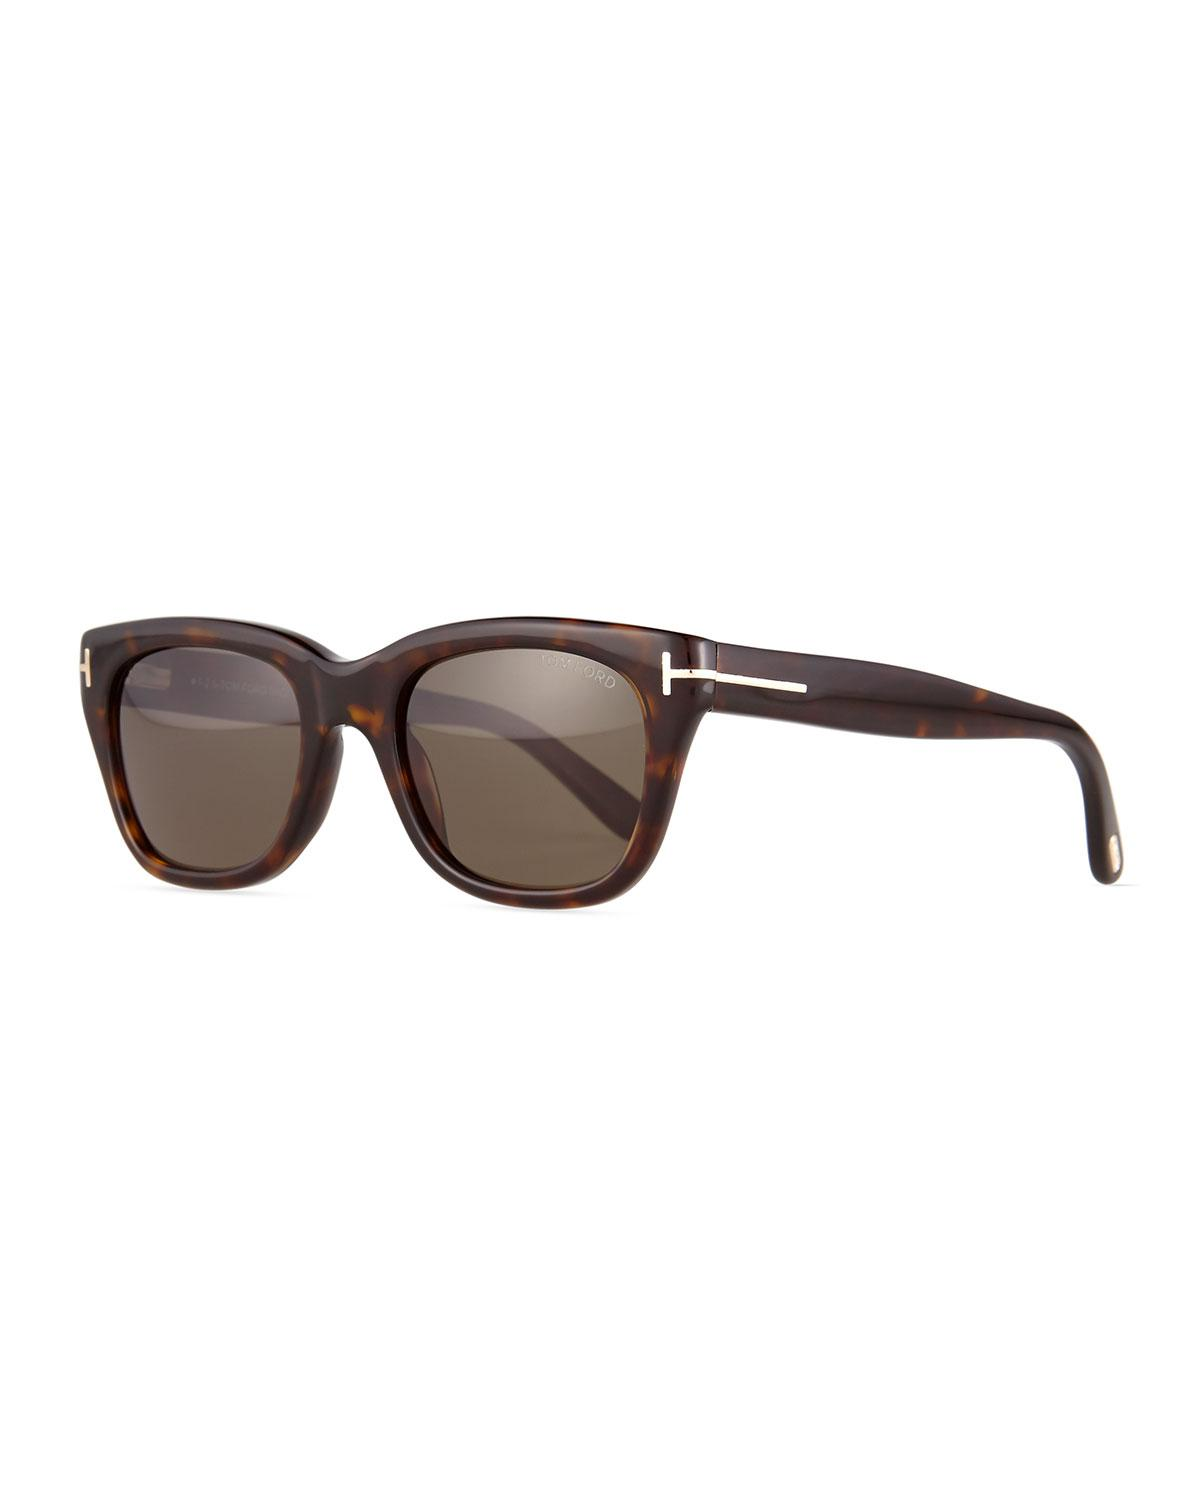 92a202afd636 Lyst - Tom Ford Snowdon Shiny Acetate Sunglasses in Brown